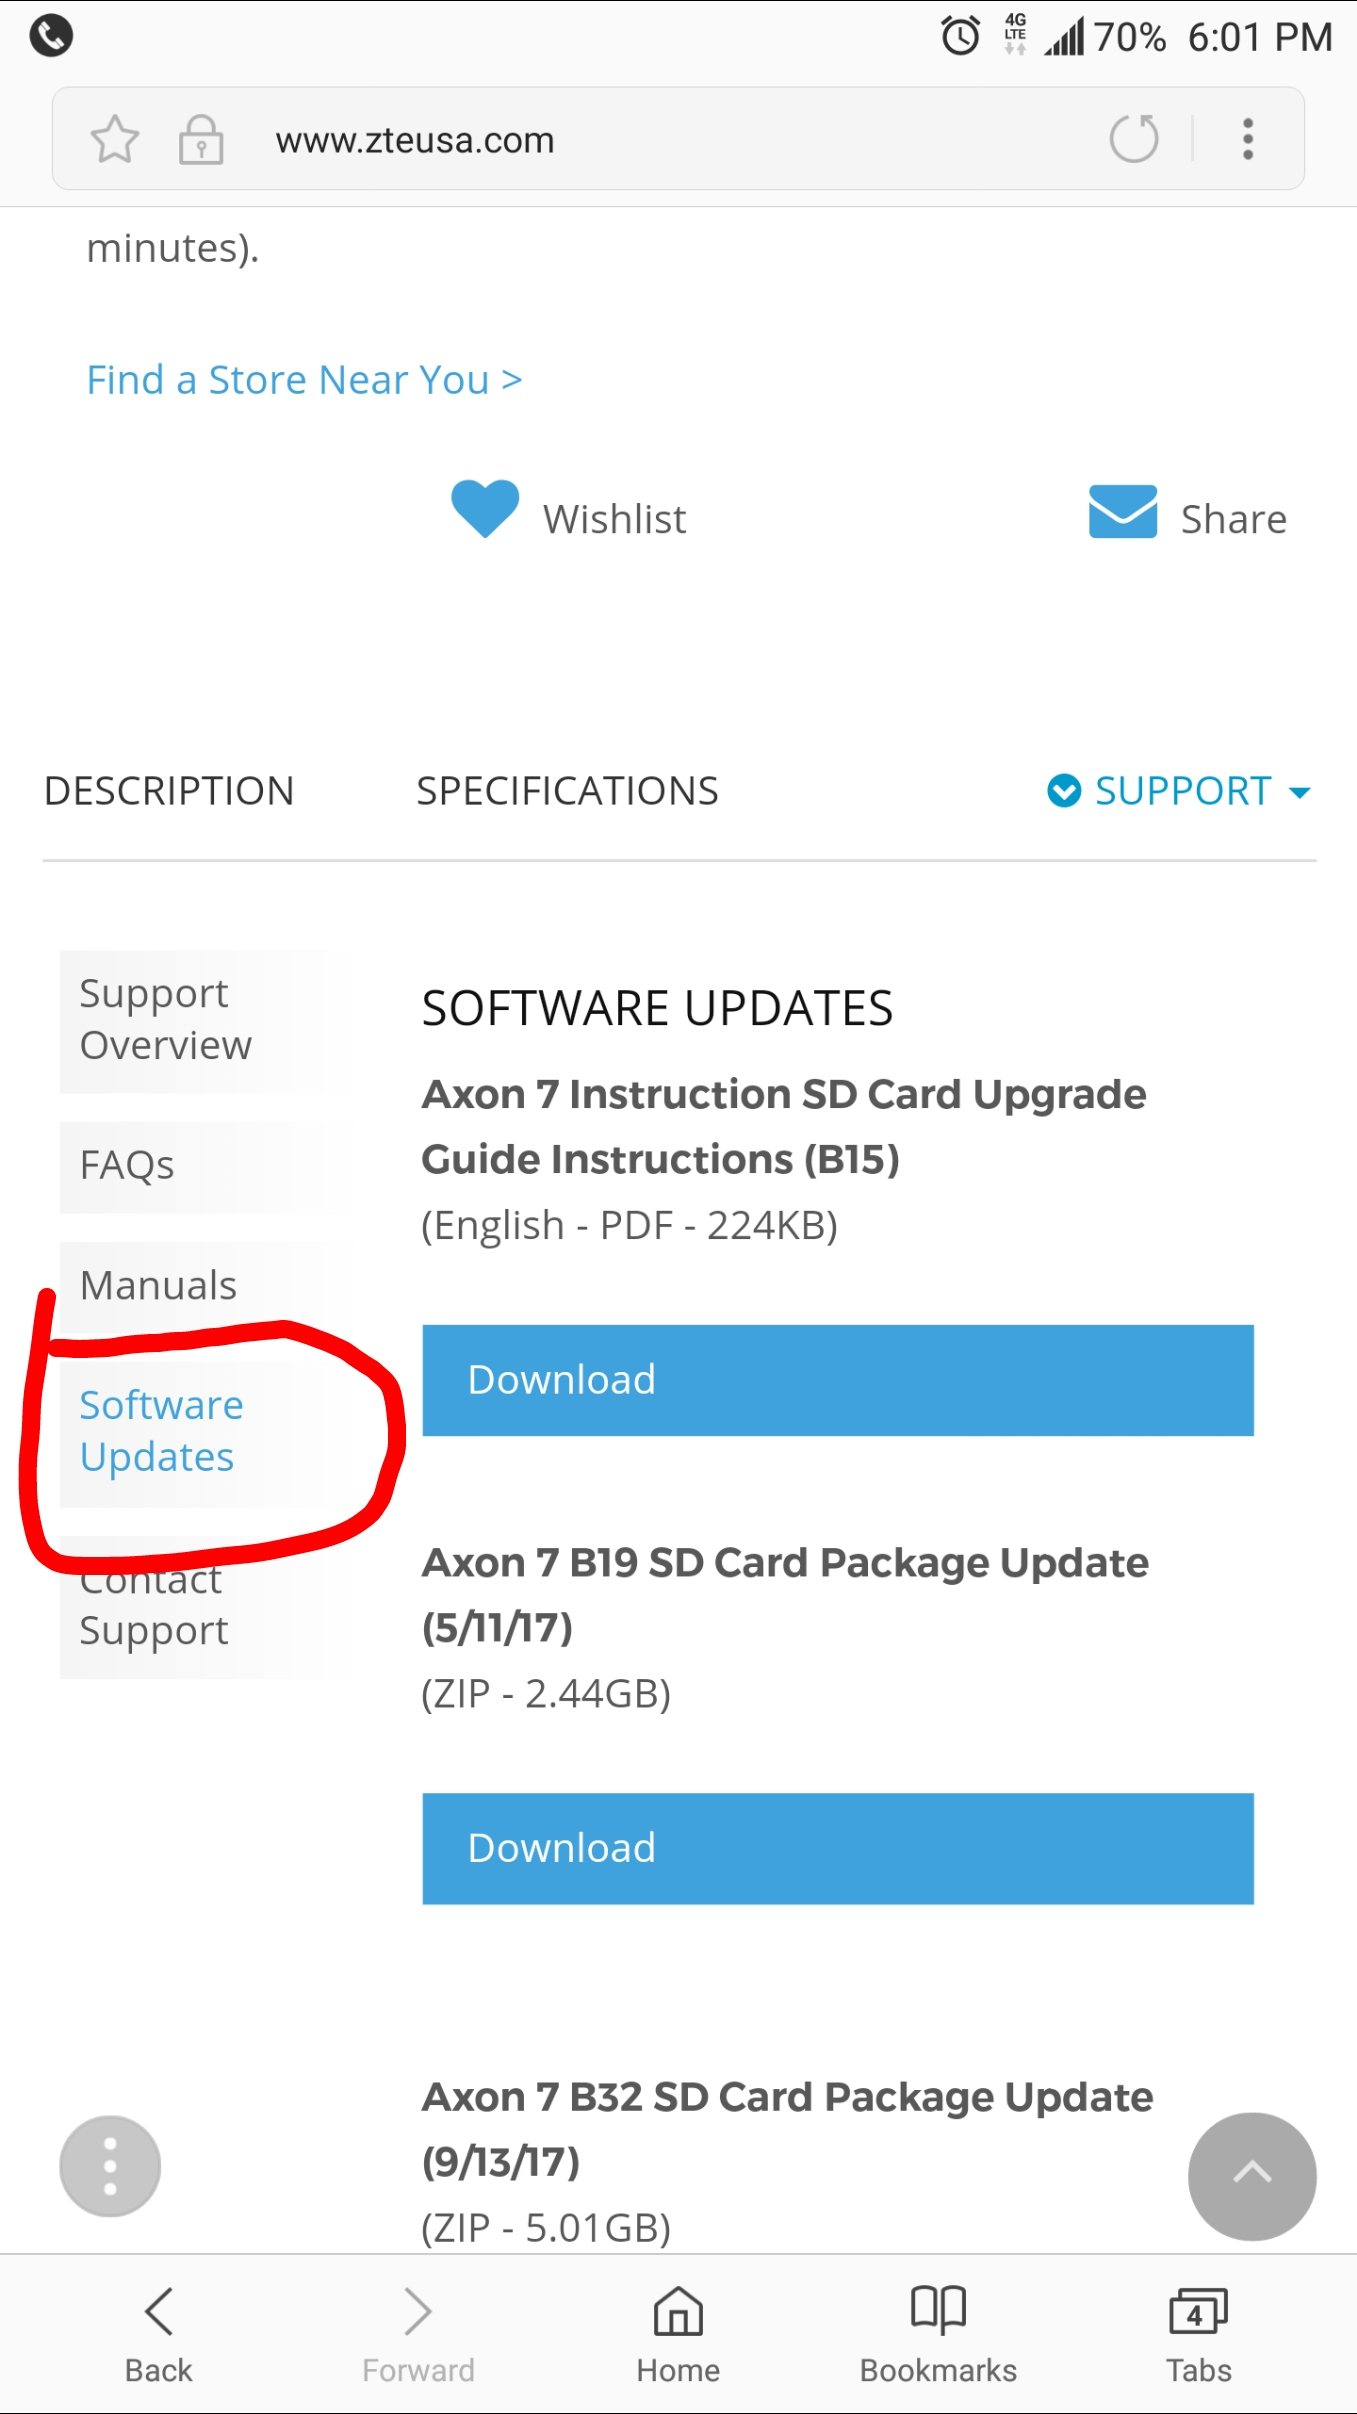 Cannot upgrade my A2017U from B25 to B32 - what am I doing wrong